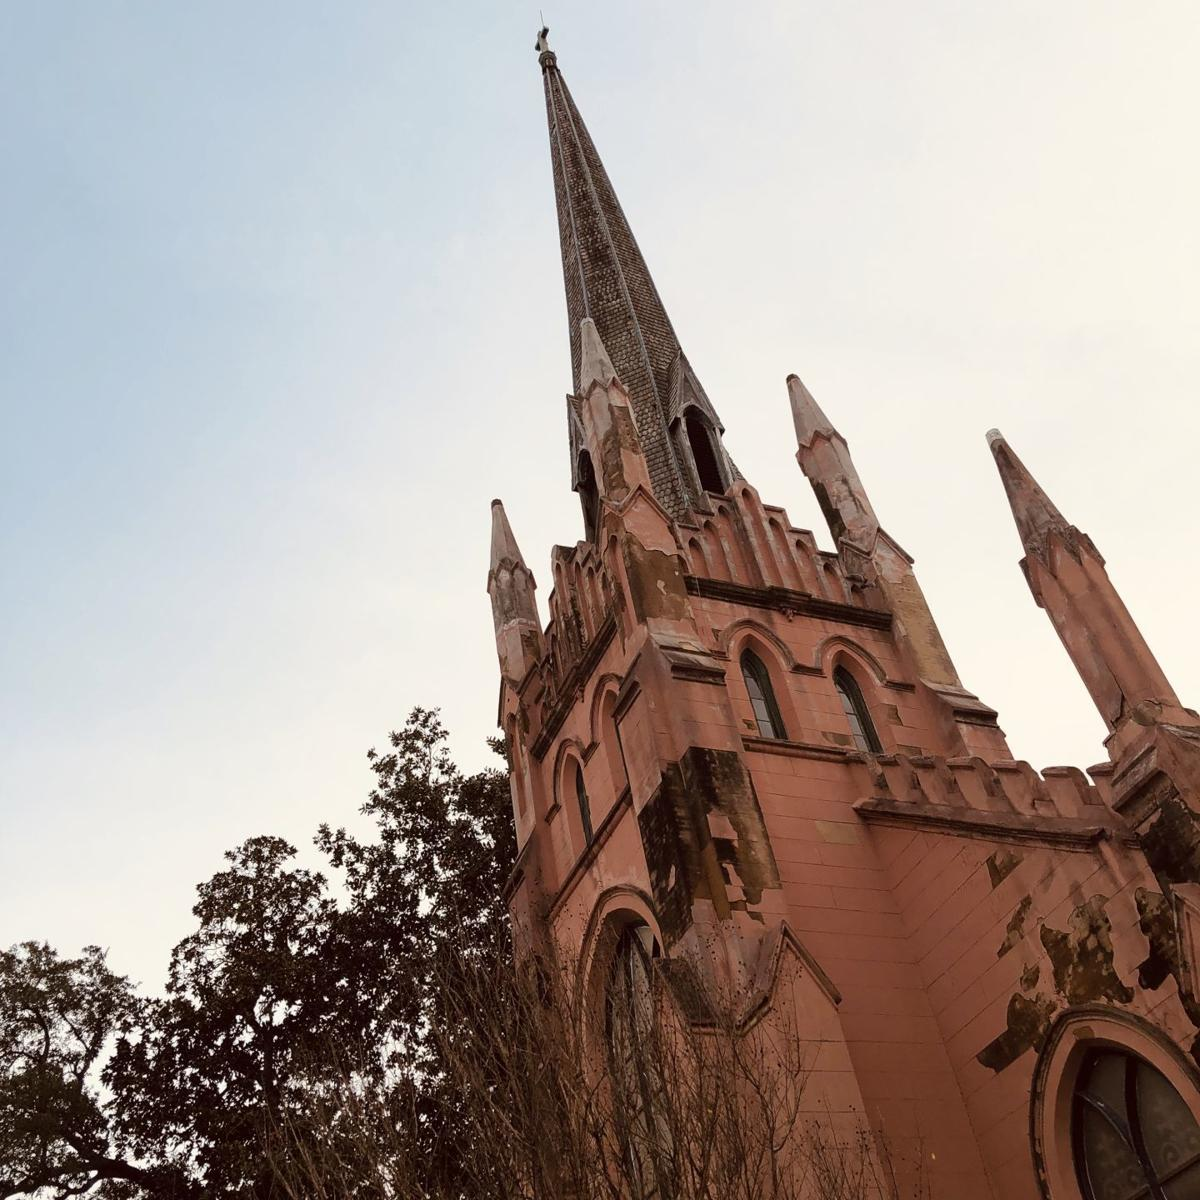 The steeple needs to be stabilized